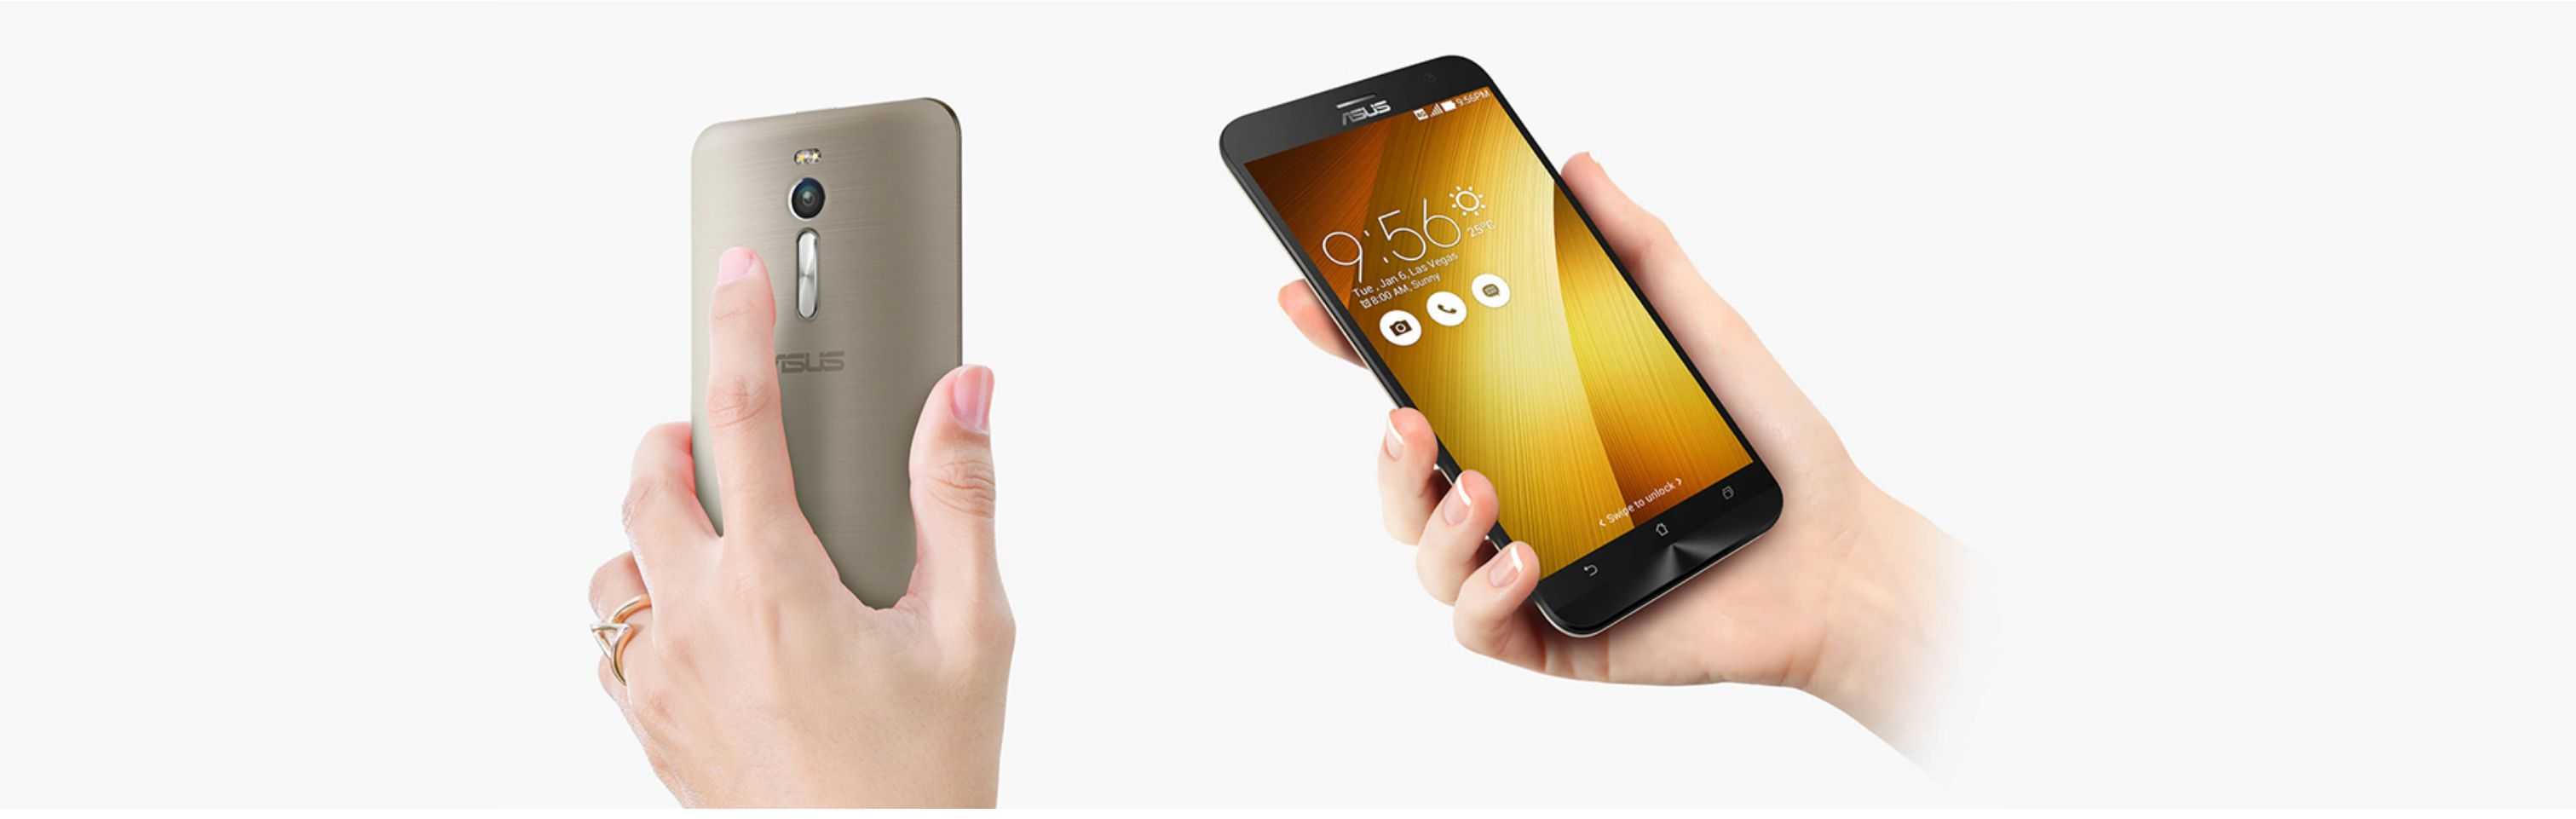 Asus ZenFone 2, front and back view, held in hands